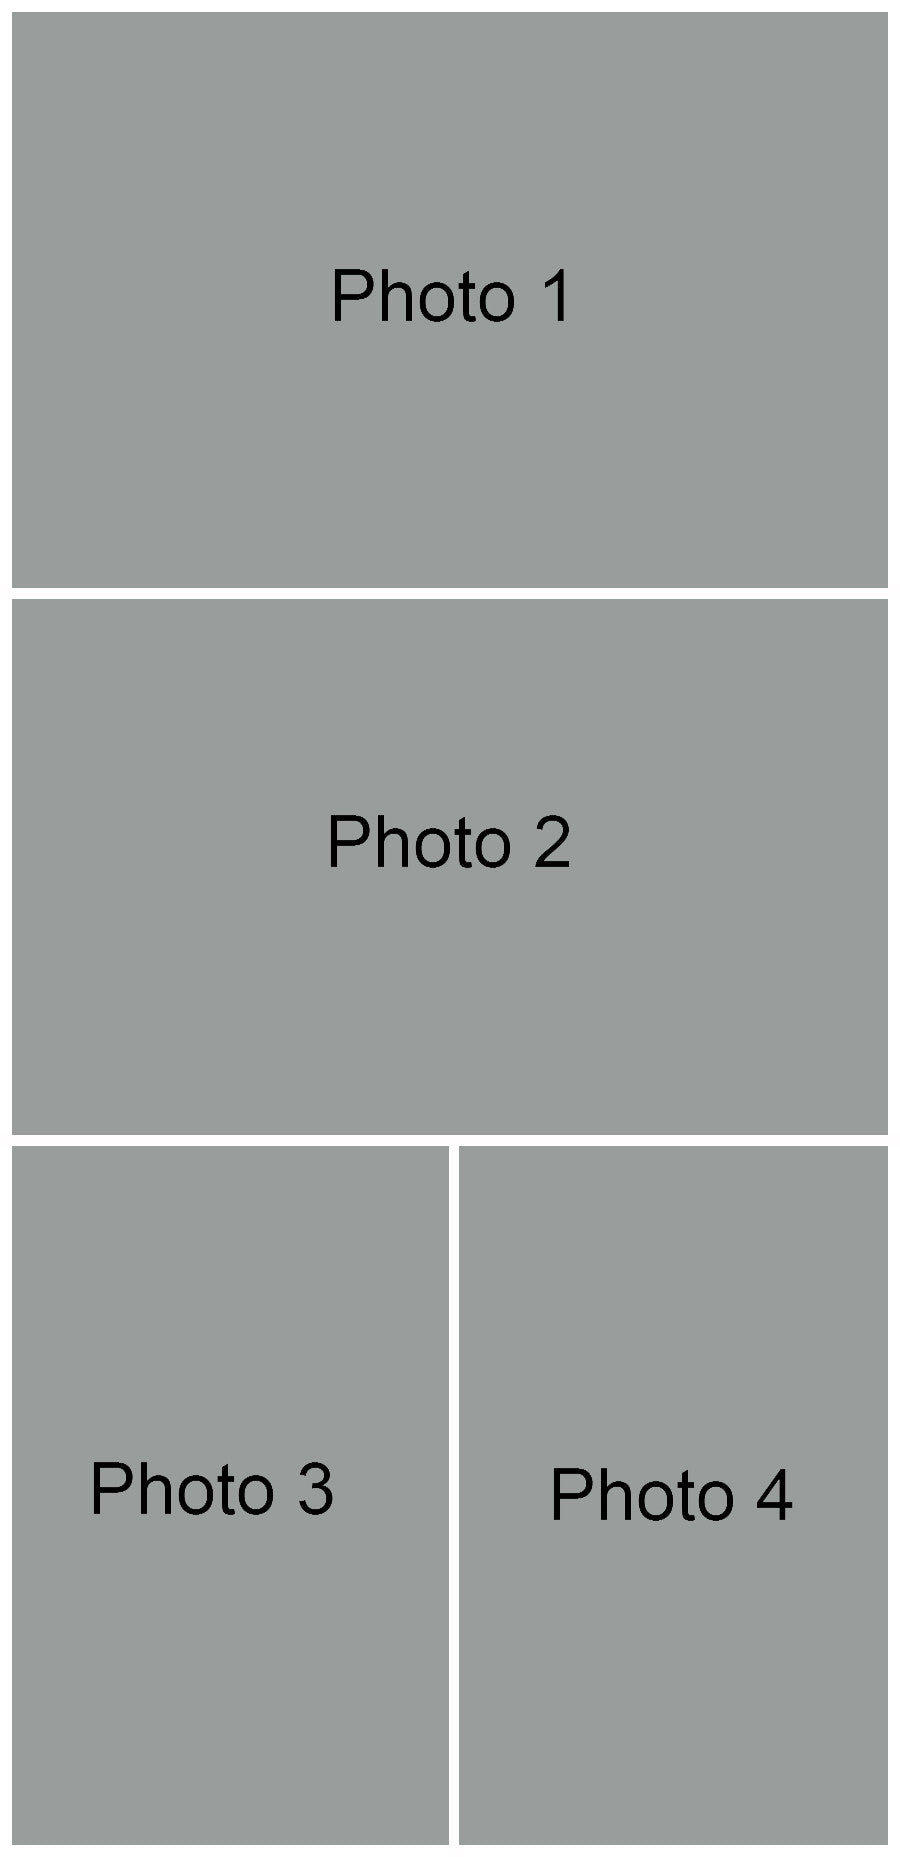 FREE 4 Photo Collage Template | BP4U Guides